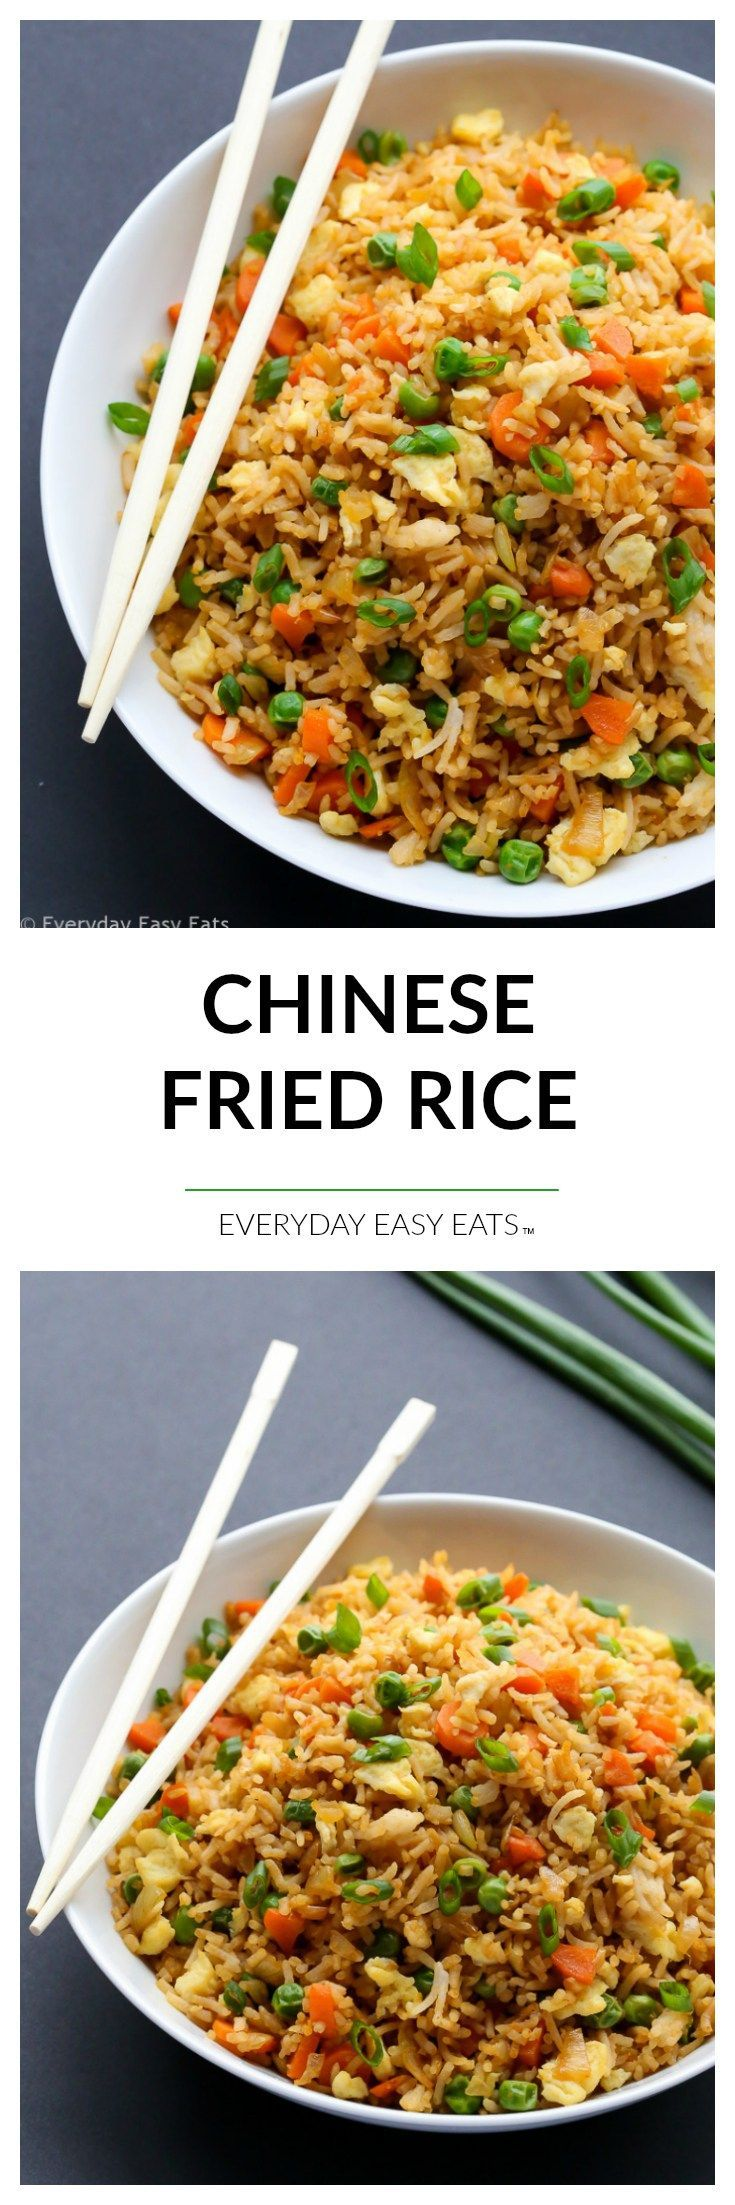 Chinese Fried Rice - 15-minute vegetarian fried rice. A healthy, flavorful and satisfying side dish or main. | http://EverydayEasyEats.com